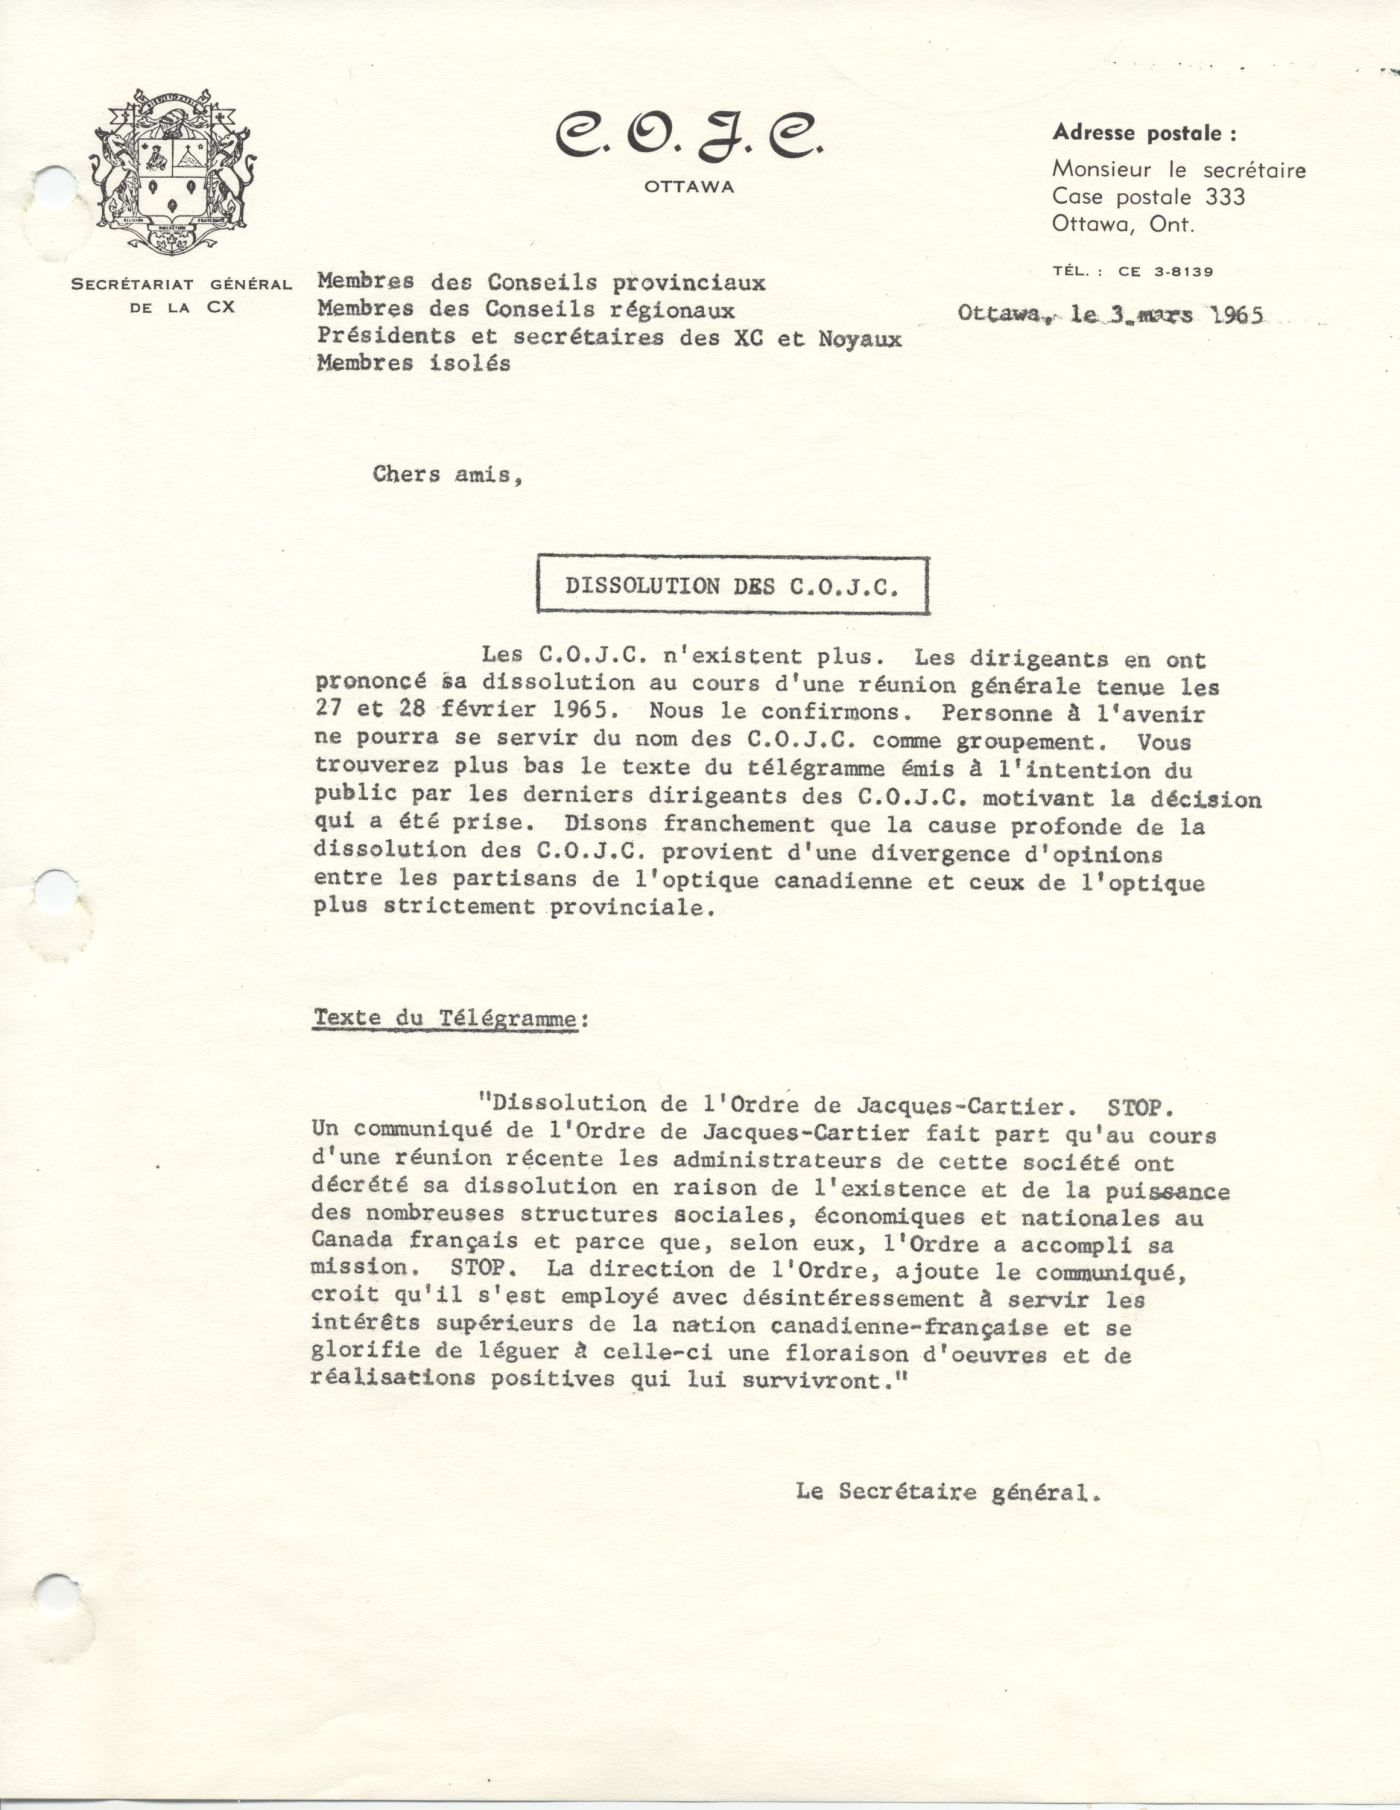 """"""" Text typewritten in French, on letterhead of the Commandeurs de l'Ordre de Jacques-Cartier (COJC), with the Order's coat of arms in the top left corner. The document includes the transcription of a telegram from the OJC. It is signed by the Secretary General of the Order."""""""